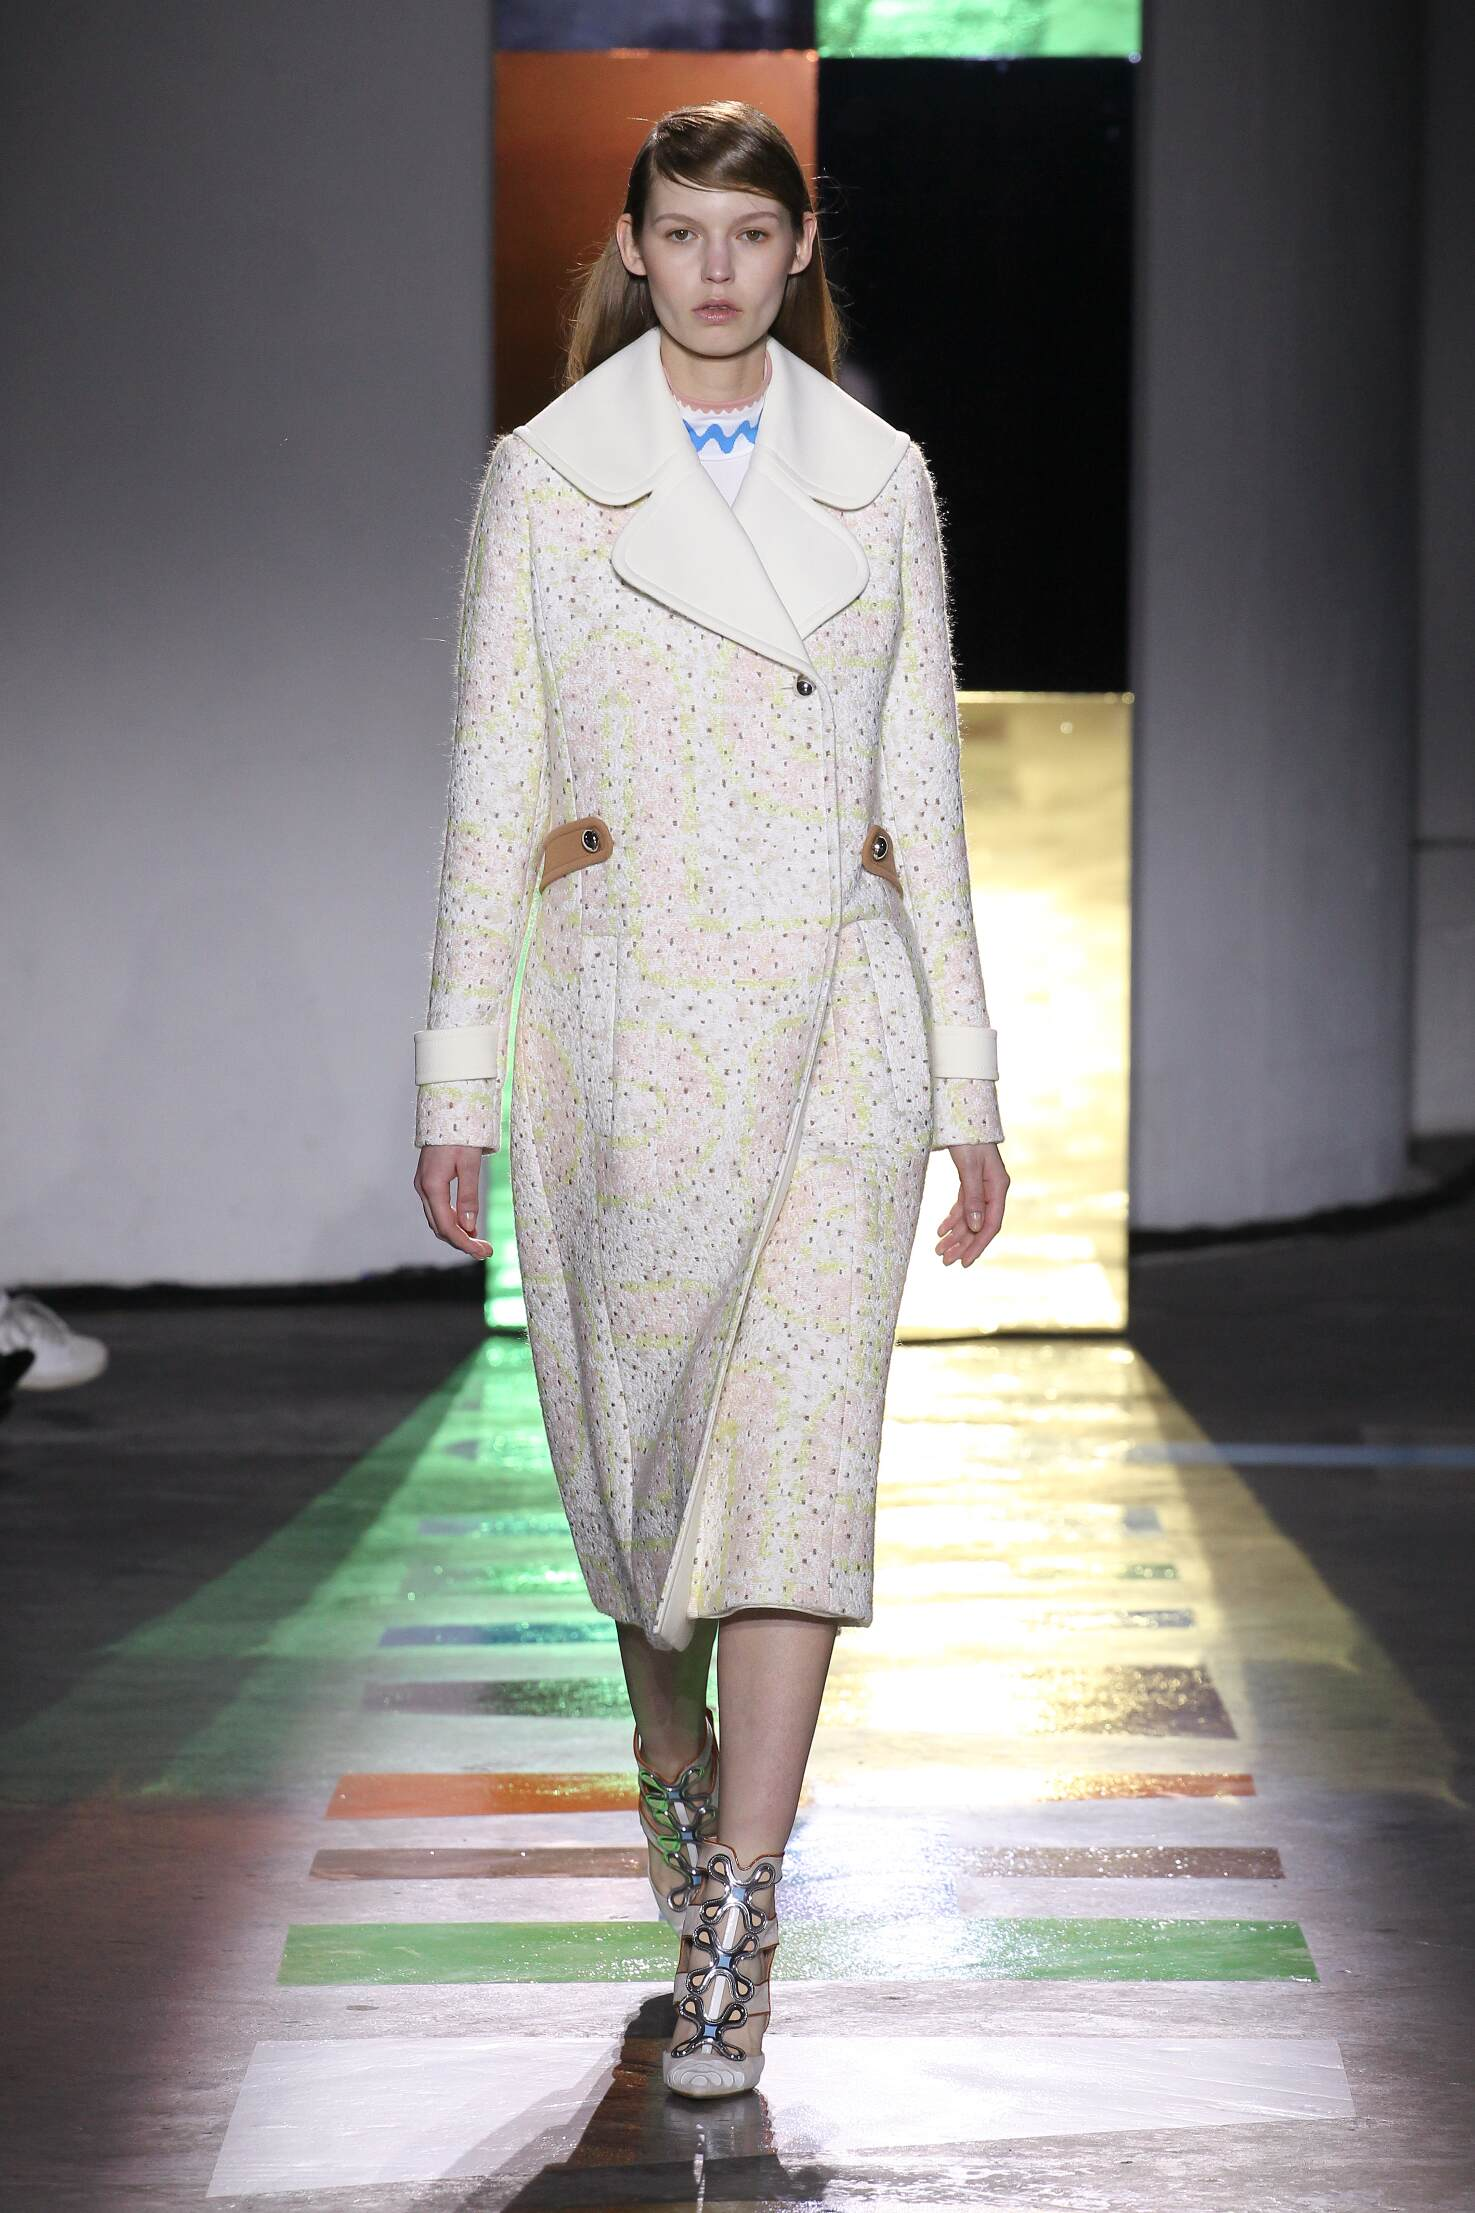 2016 Fall Fashion Woman Peter Pilotto Collection